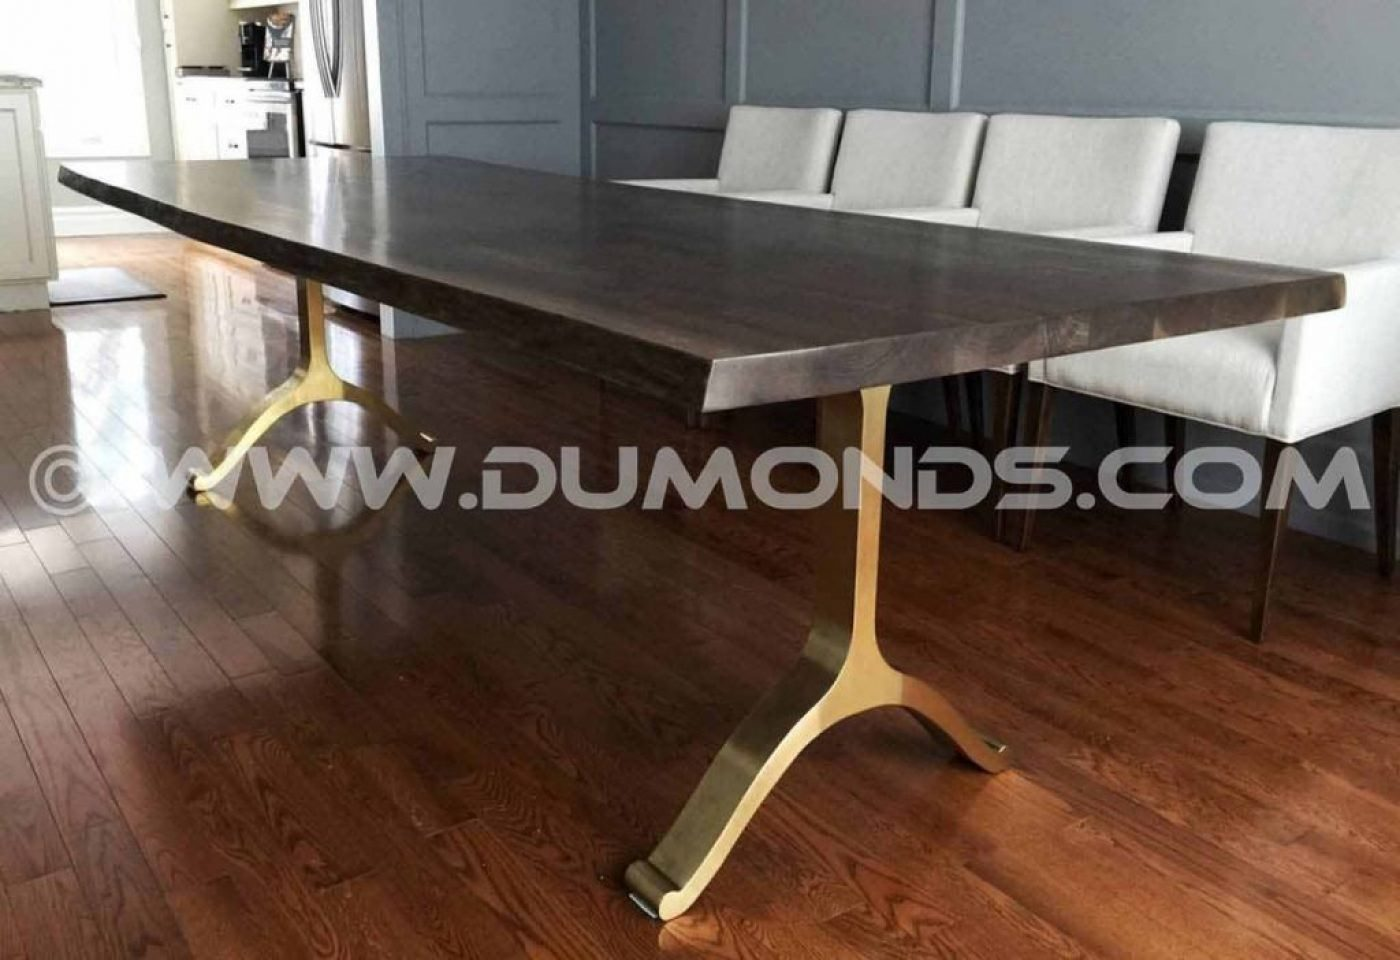 GOLDEN ARCHED STEEL LEGS UNDER A WALNUT LIVE EDGE TABLE TOP